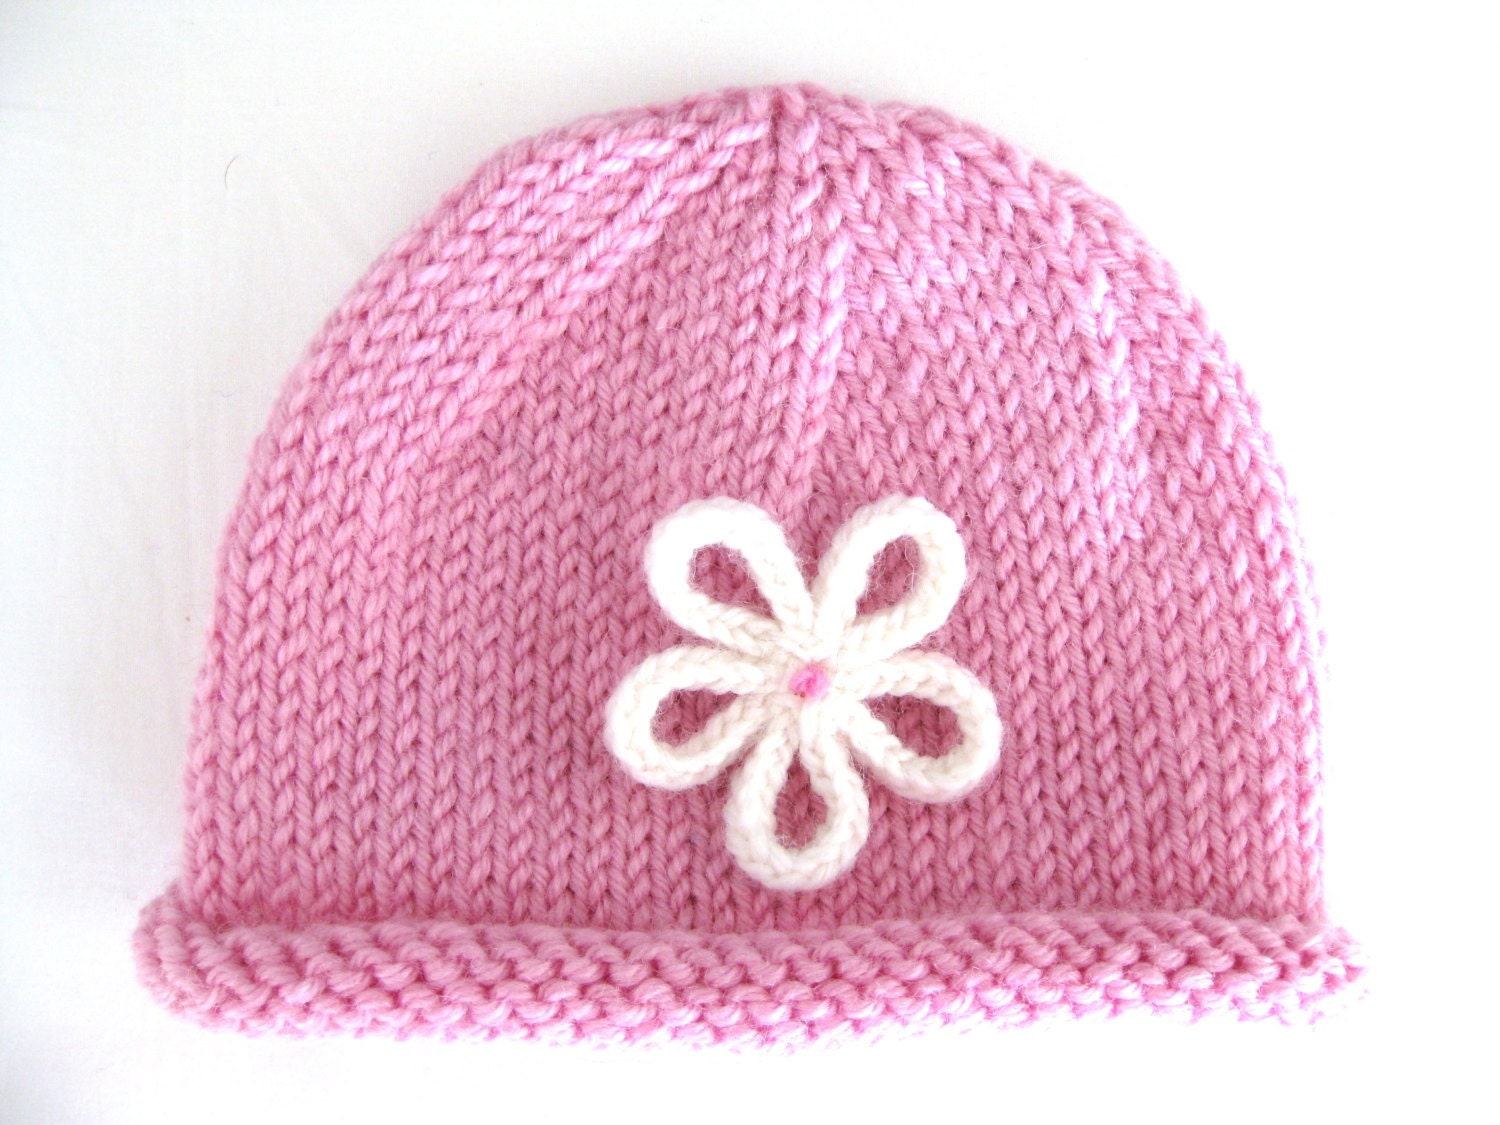 Knit Baby Hats Patterns Roll Brim : PATTERN Knitted PREEMIE and NEWBORN Rolled Brim Hat with